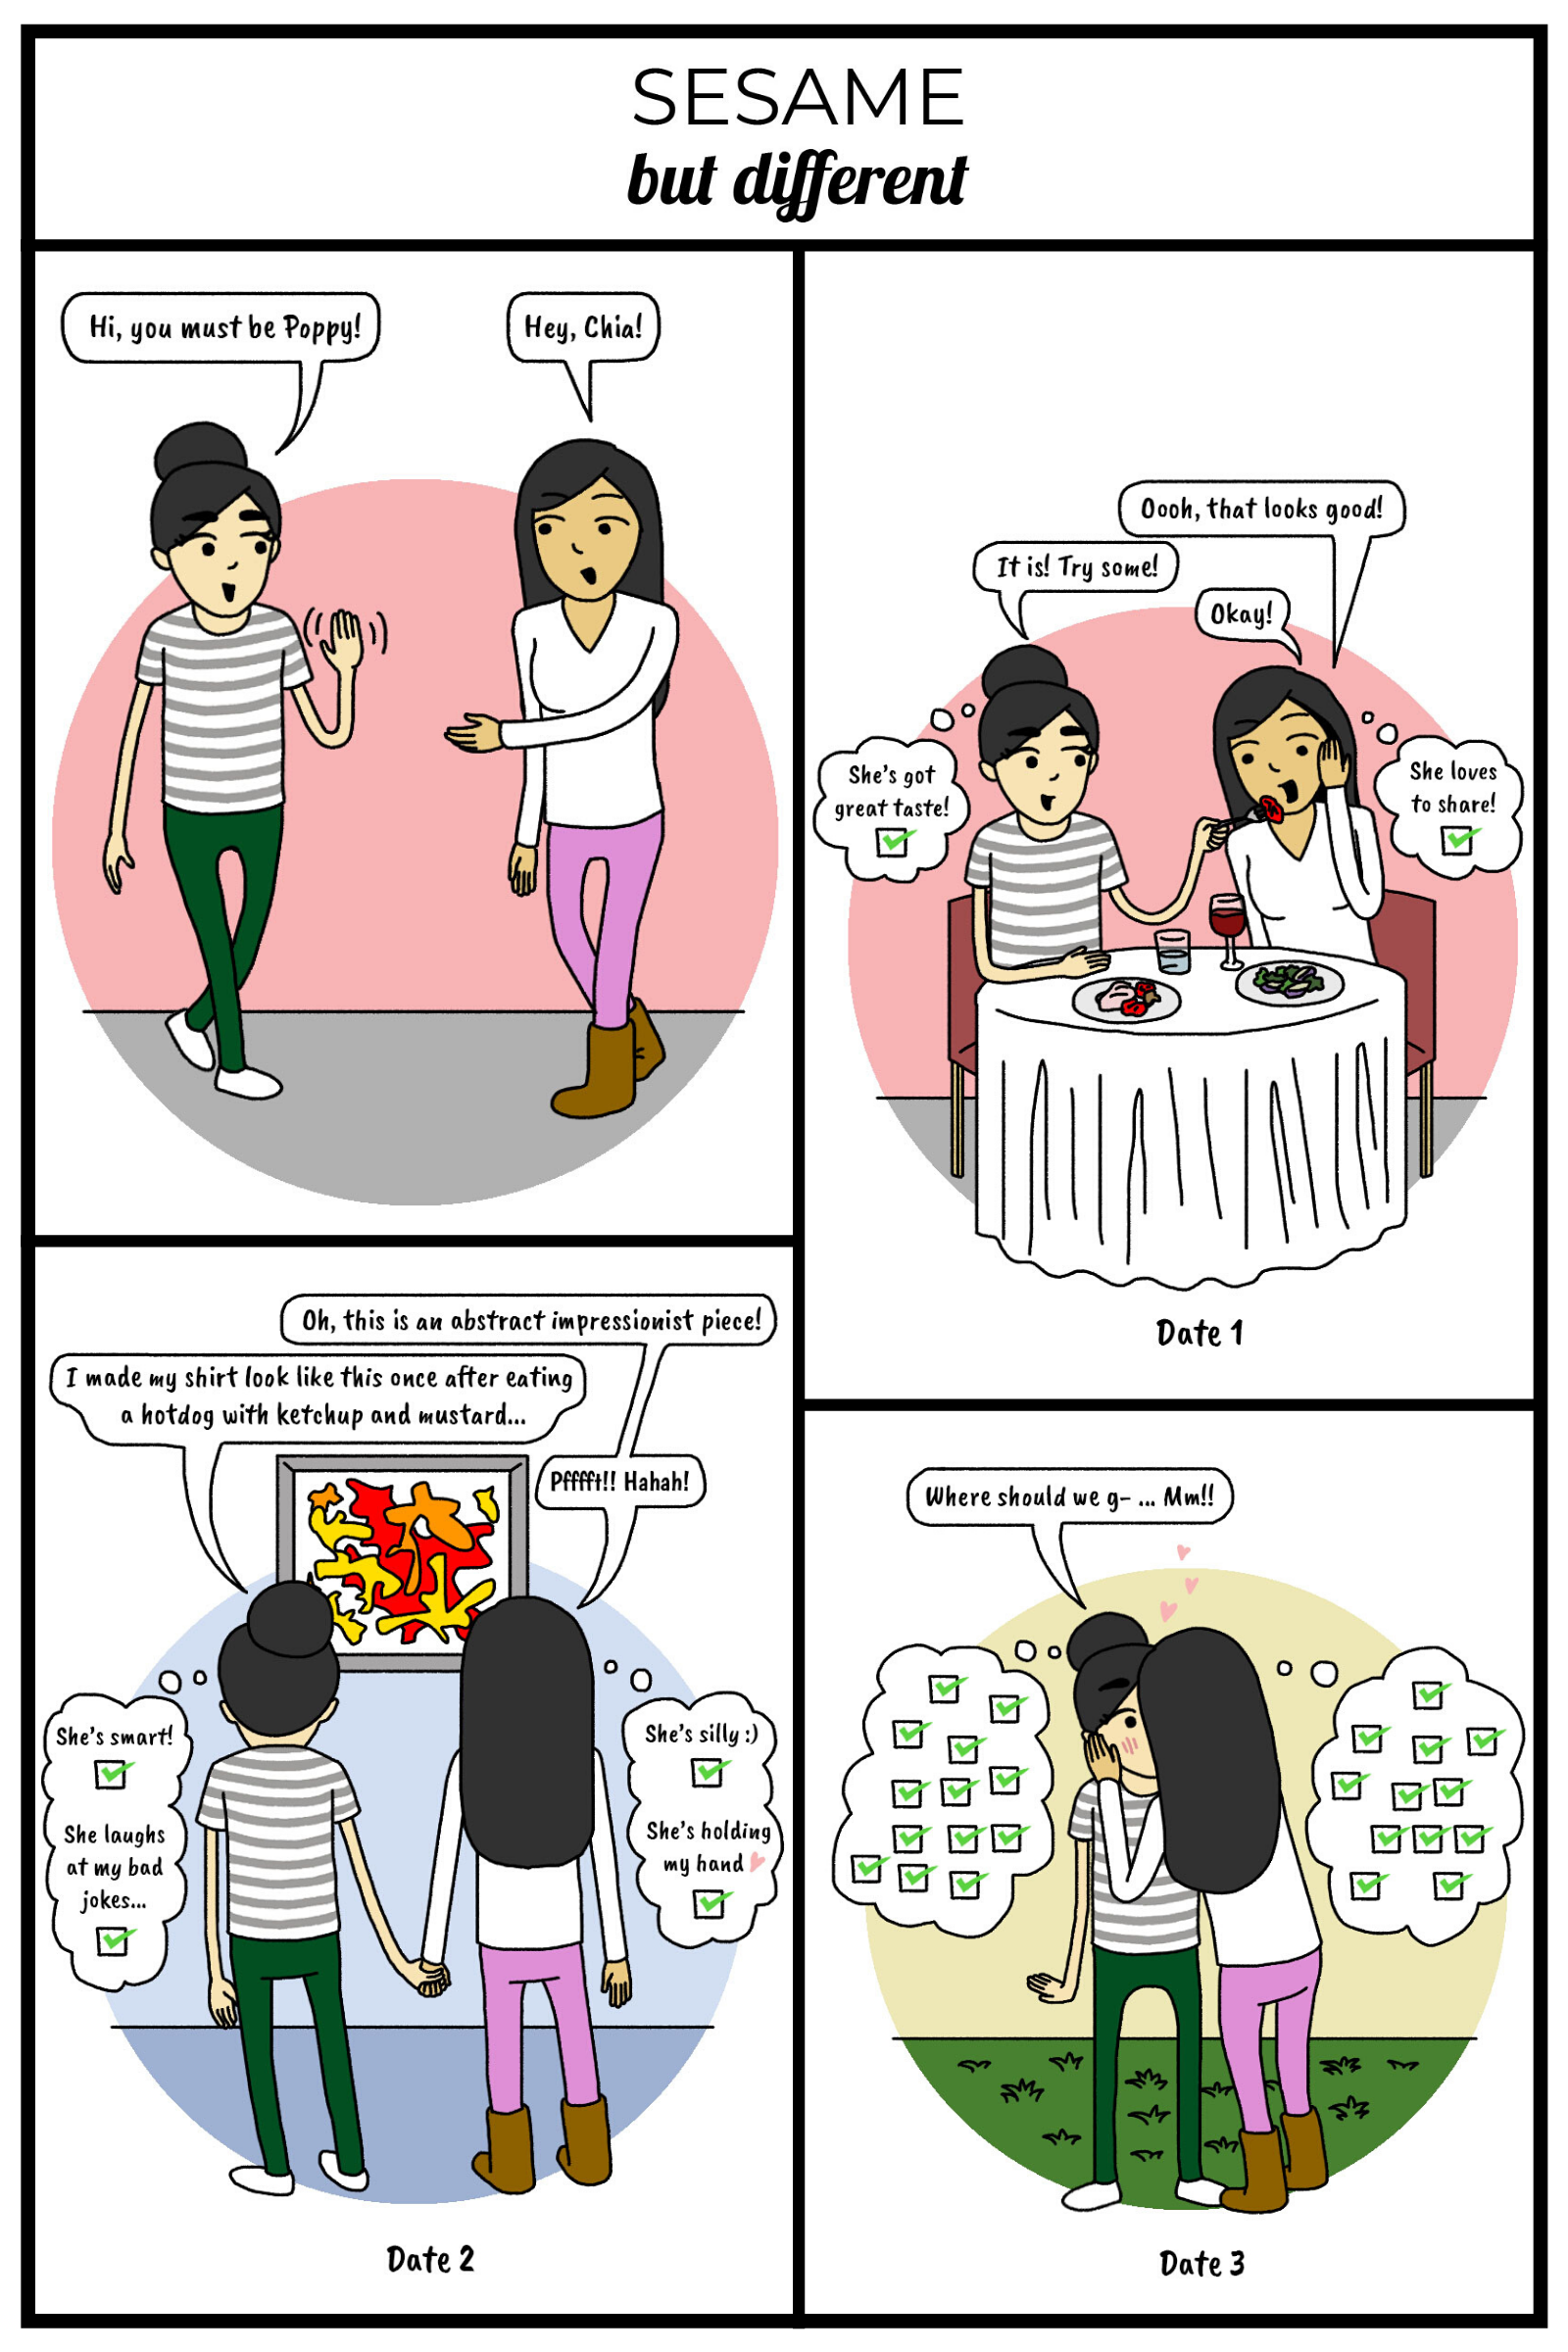 Sesame-But-Different-How-I-Met-My-Lesbian-Girlfriend-Part-3A-Lesbian-Comic.png